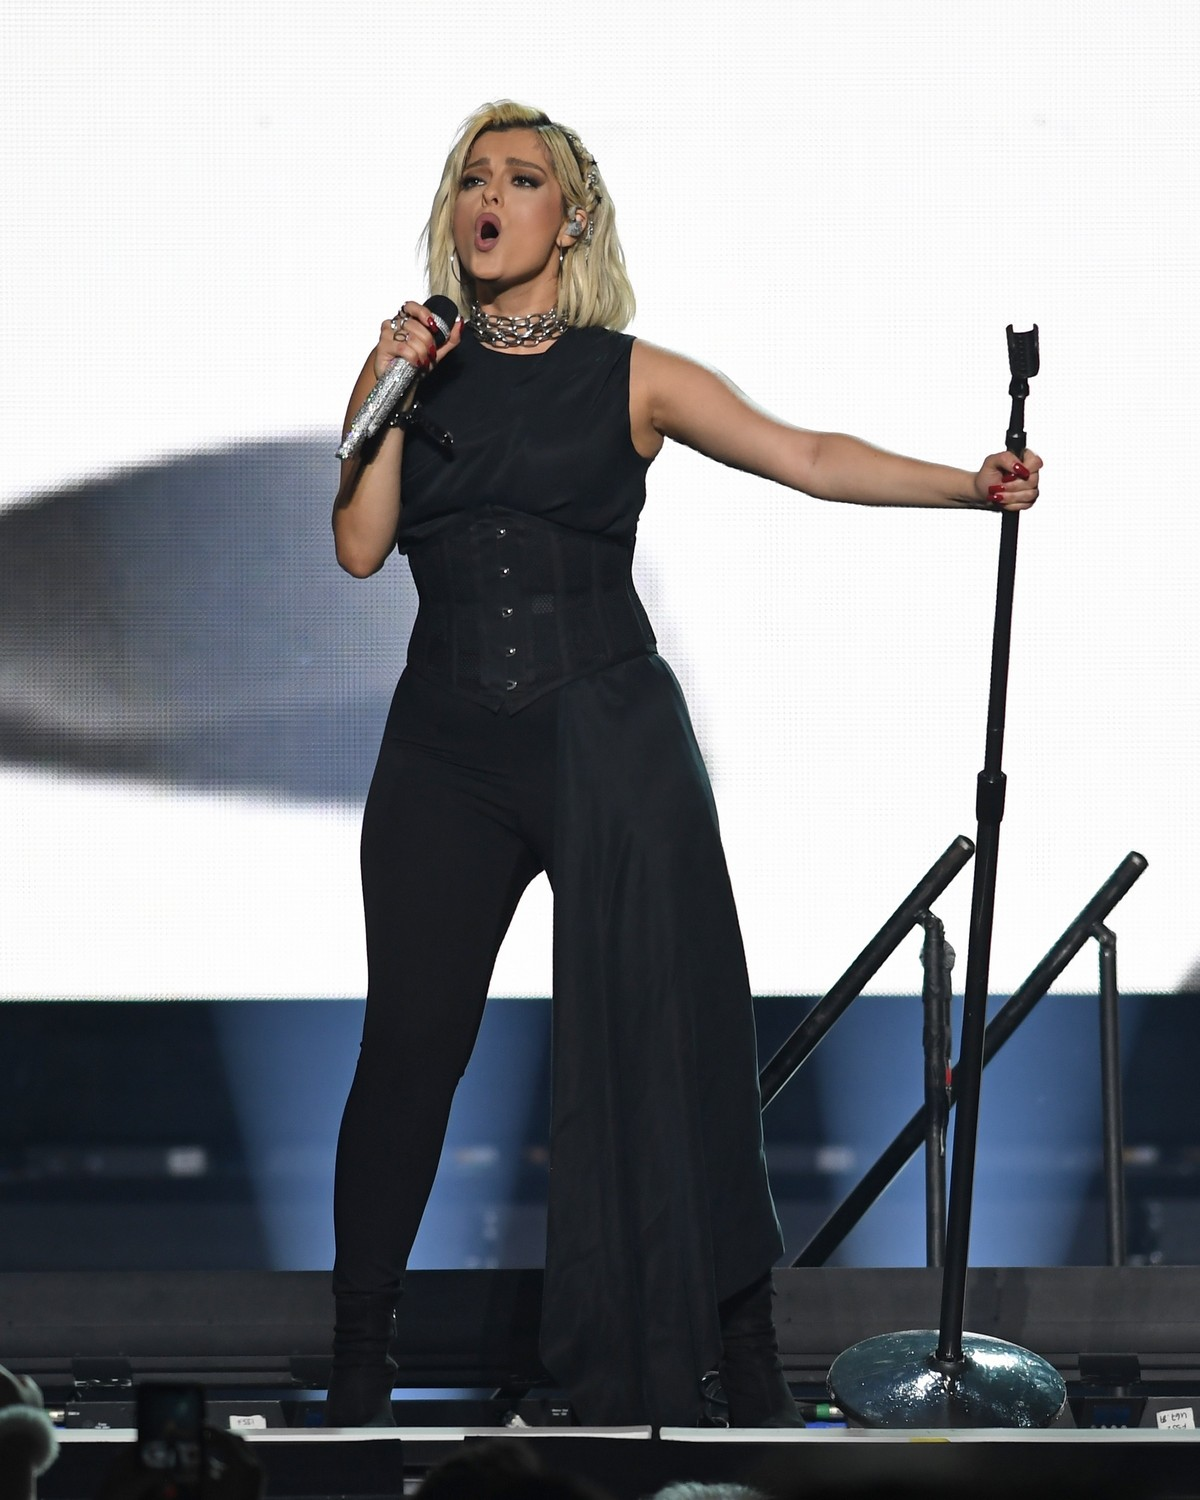 Bebe Rexha performs at the BB&T Center in Sunrise 2019/11/15 18